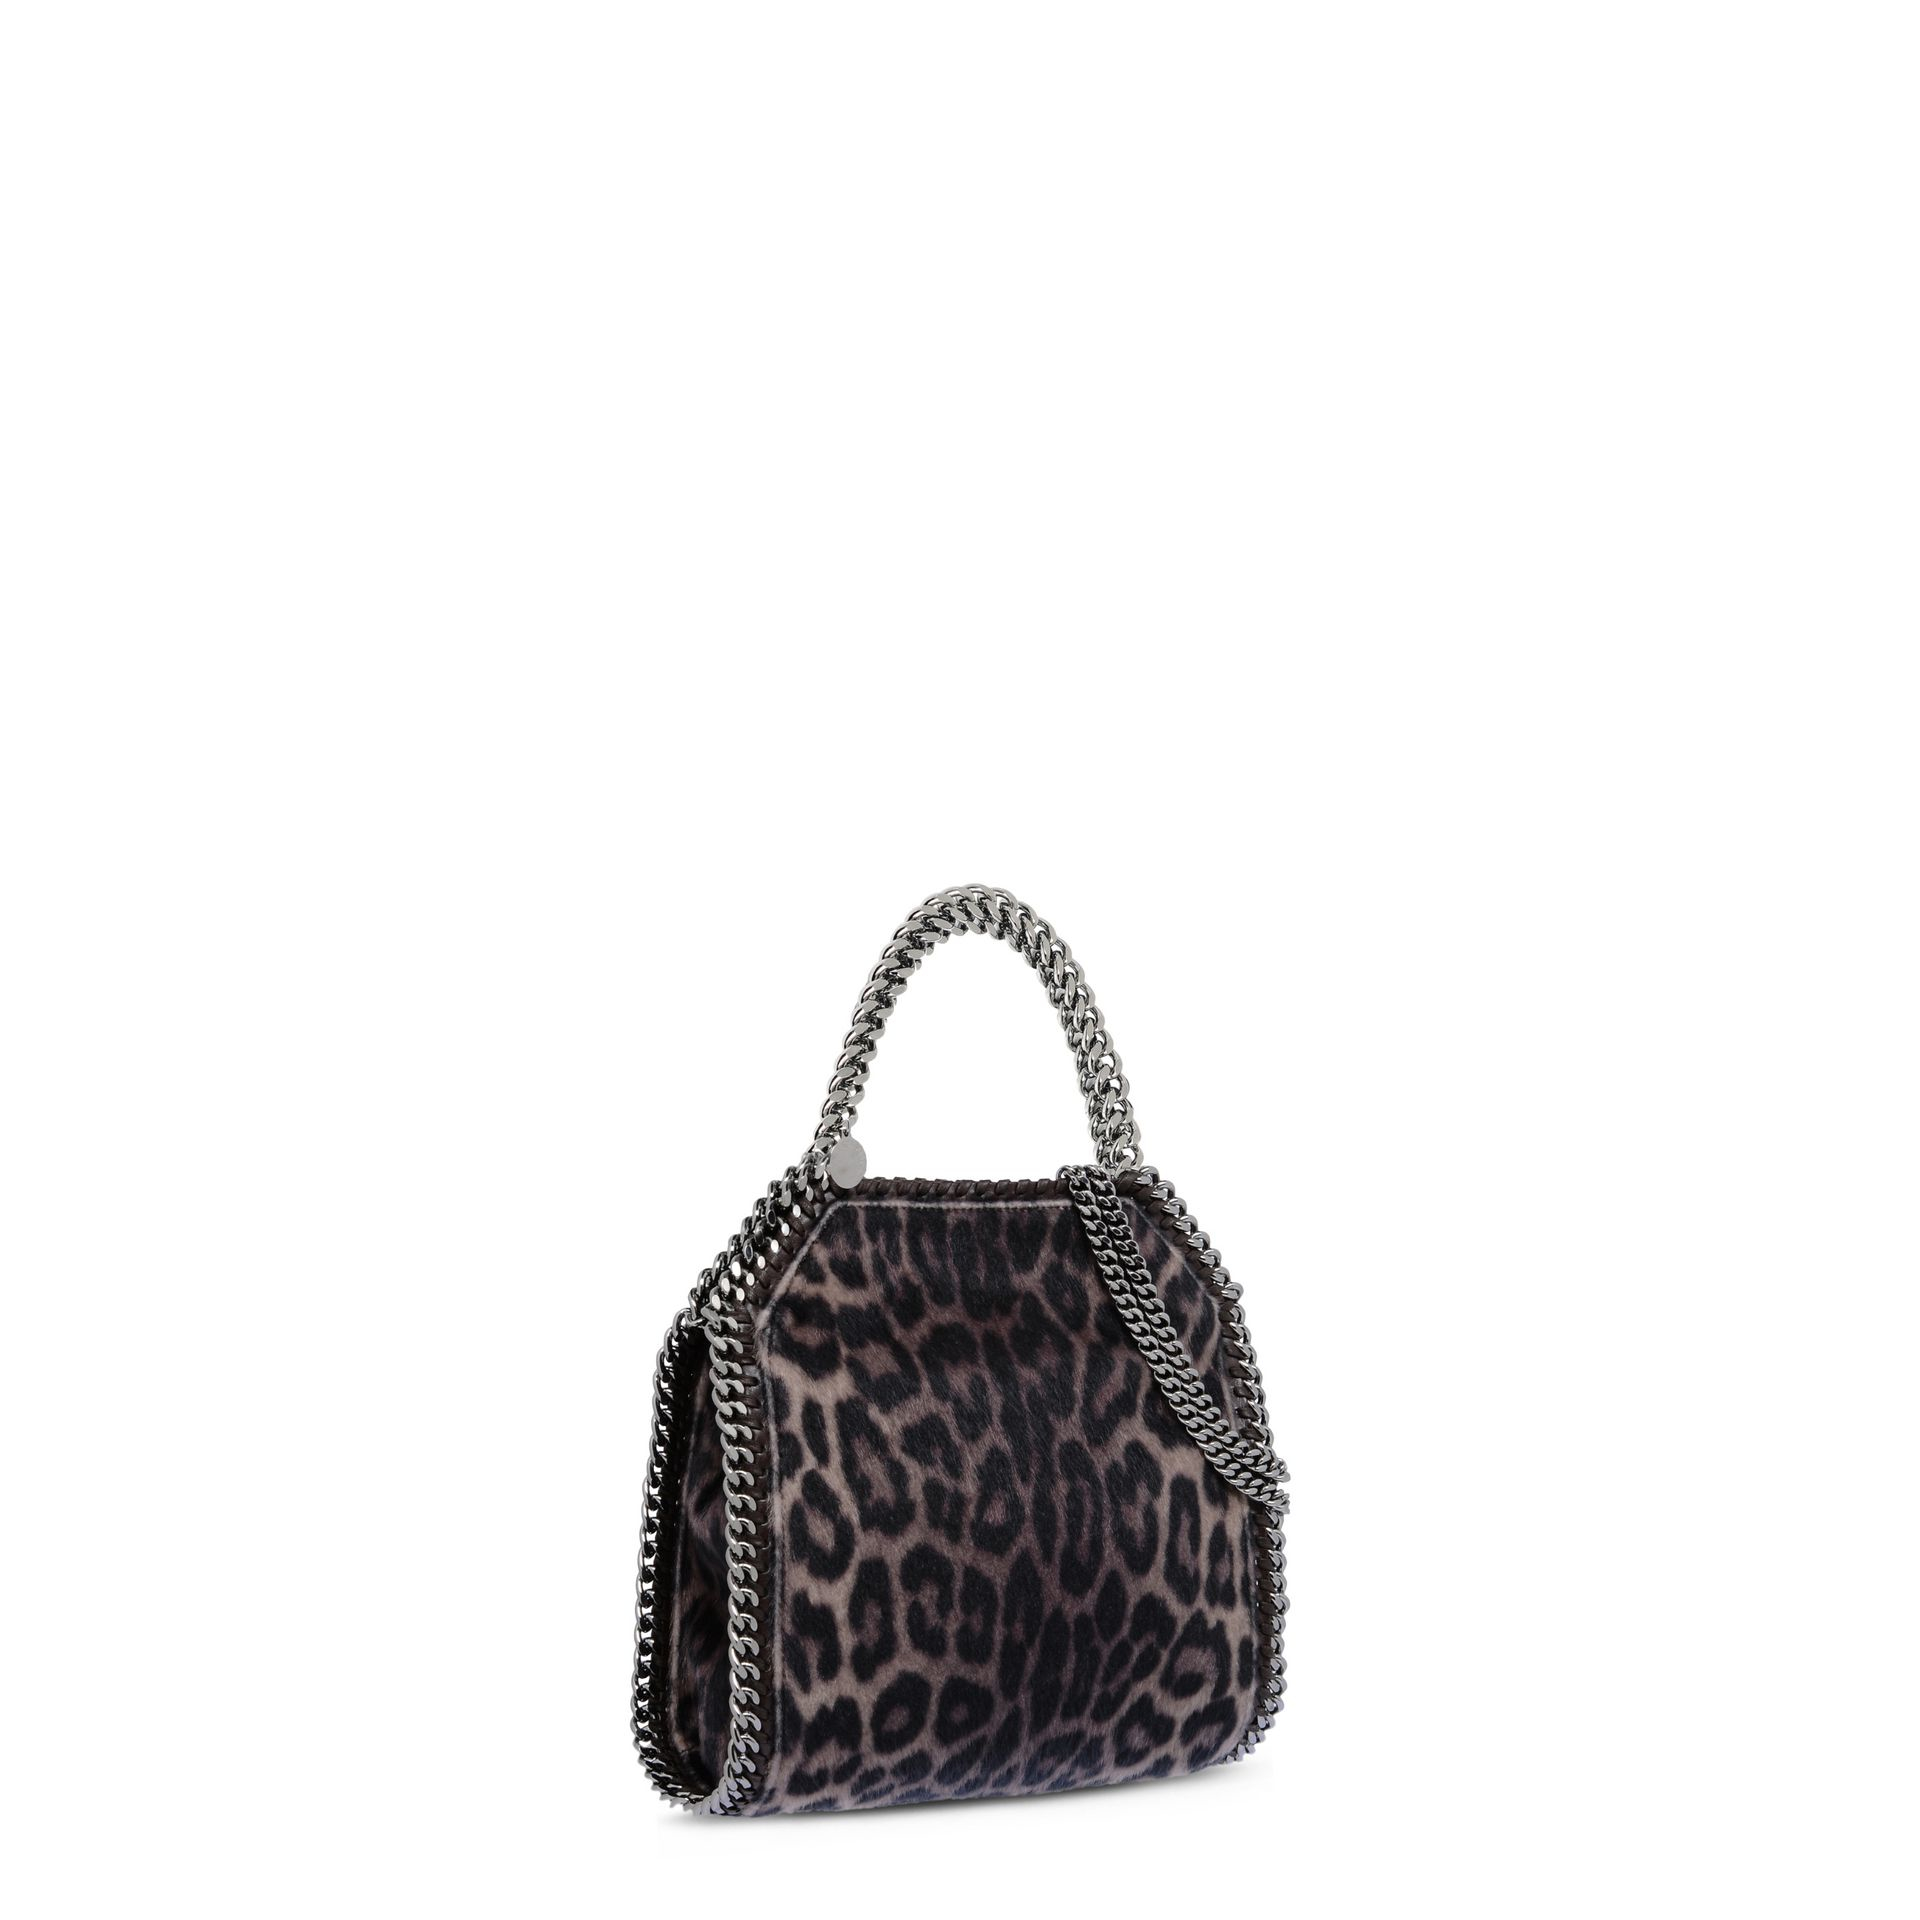 94c30023cfff4 Stella McCartney Falabella Leopard Alter Pony Mini Tote Bag - Lyst